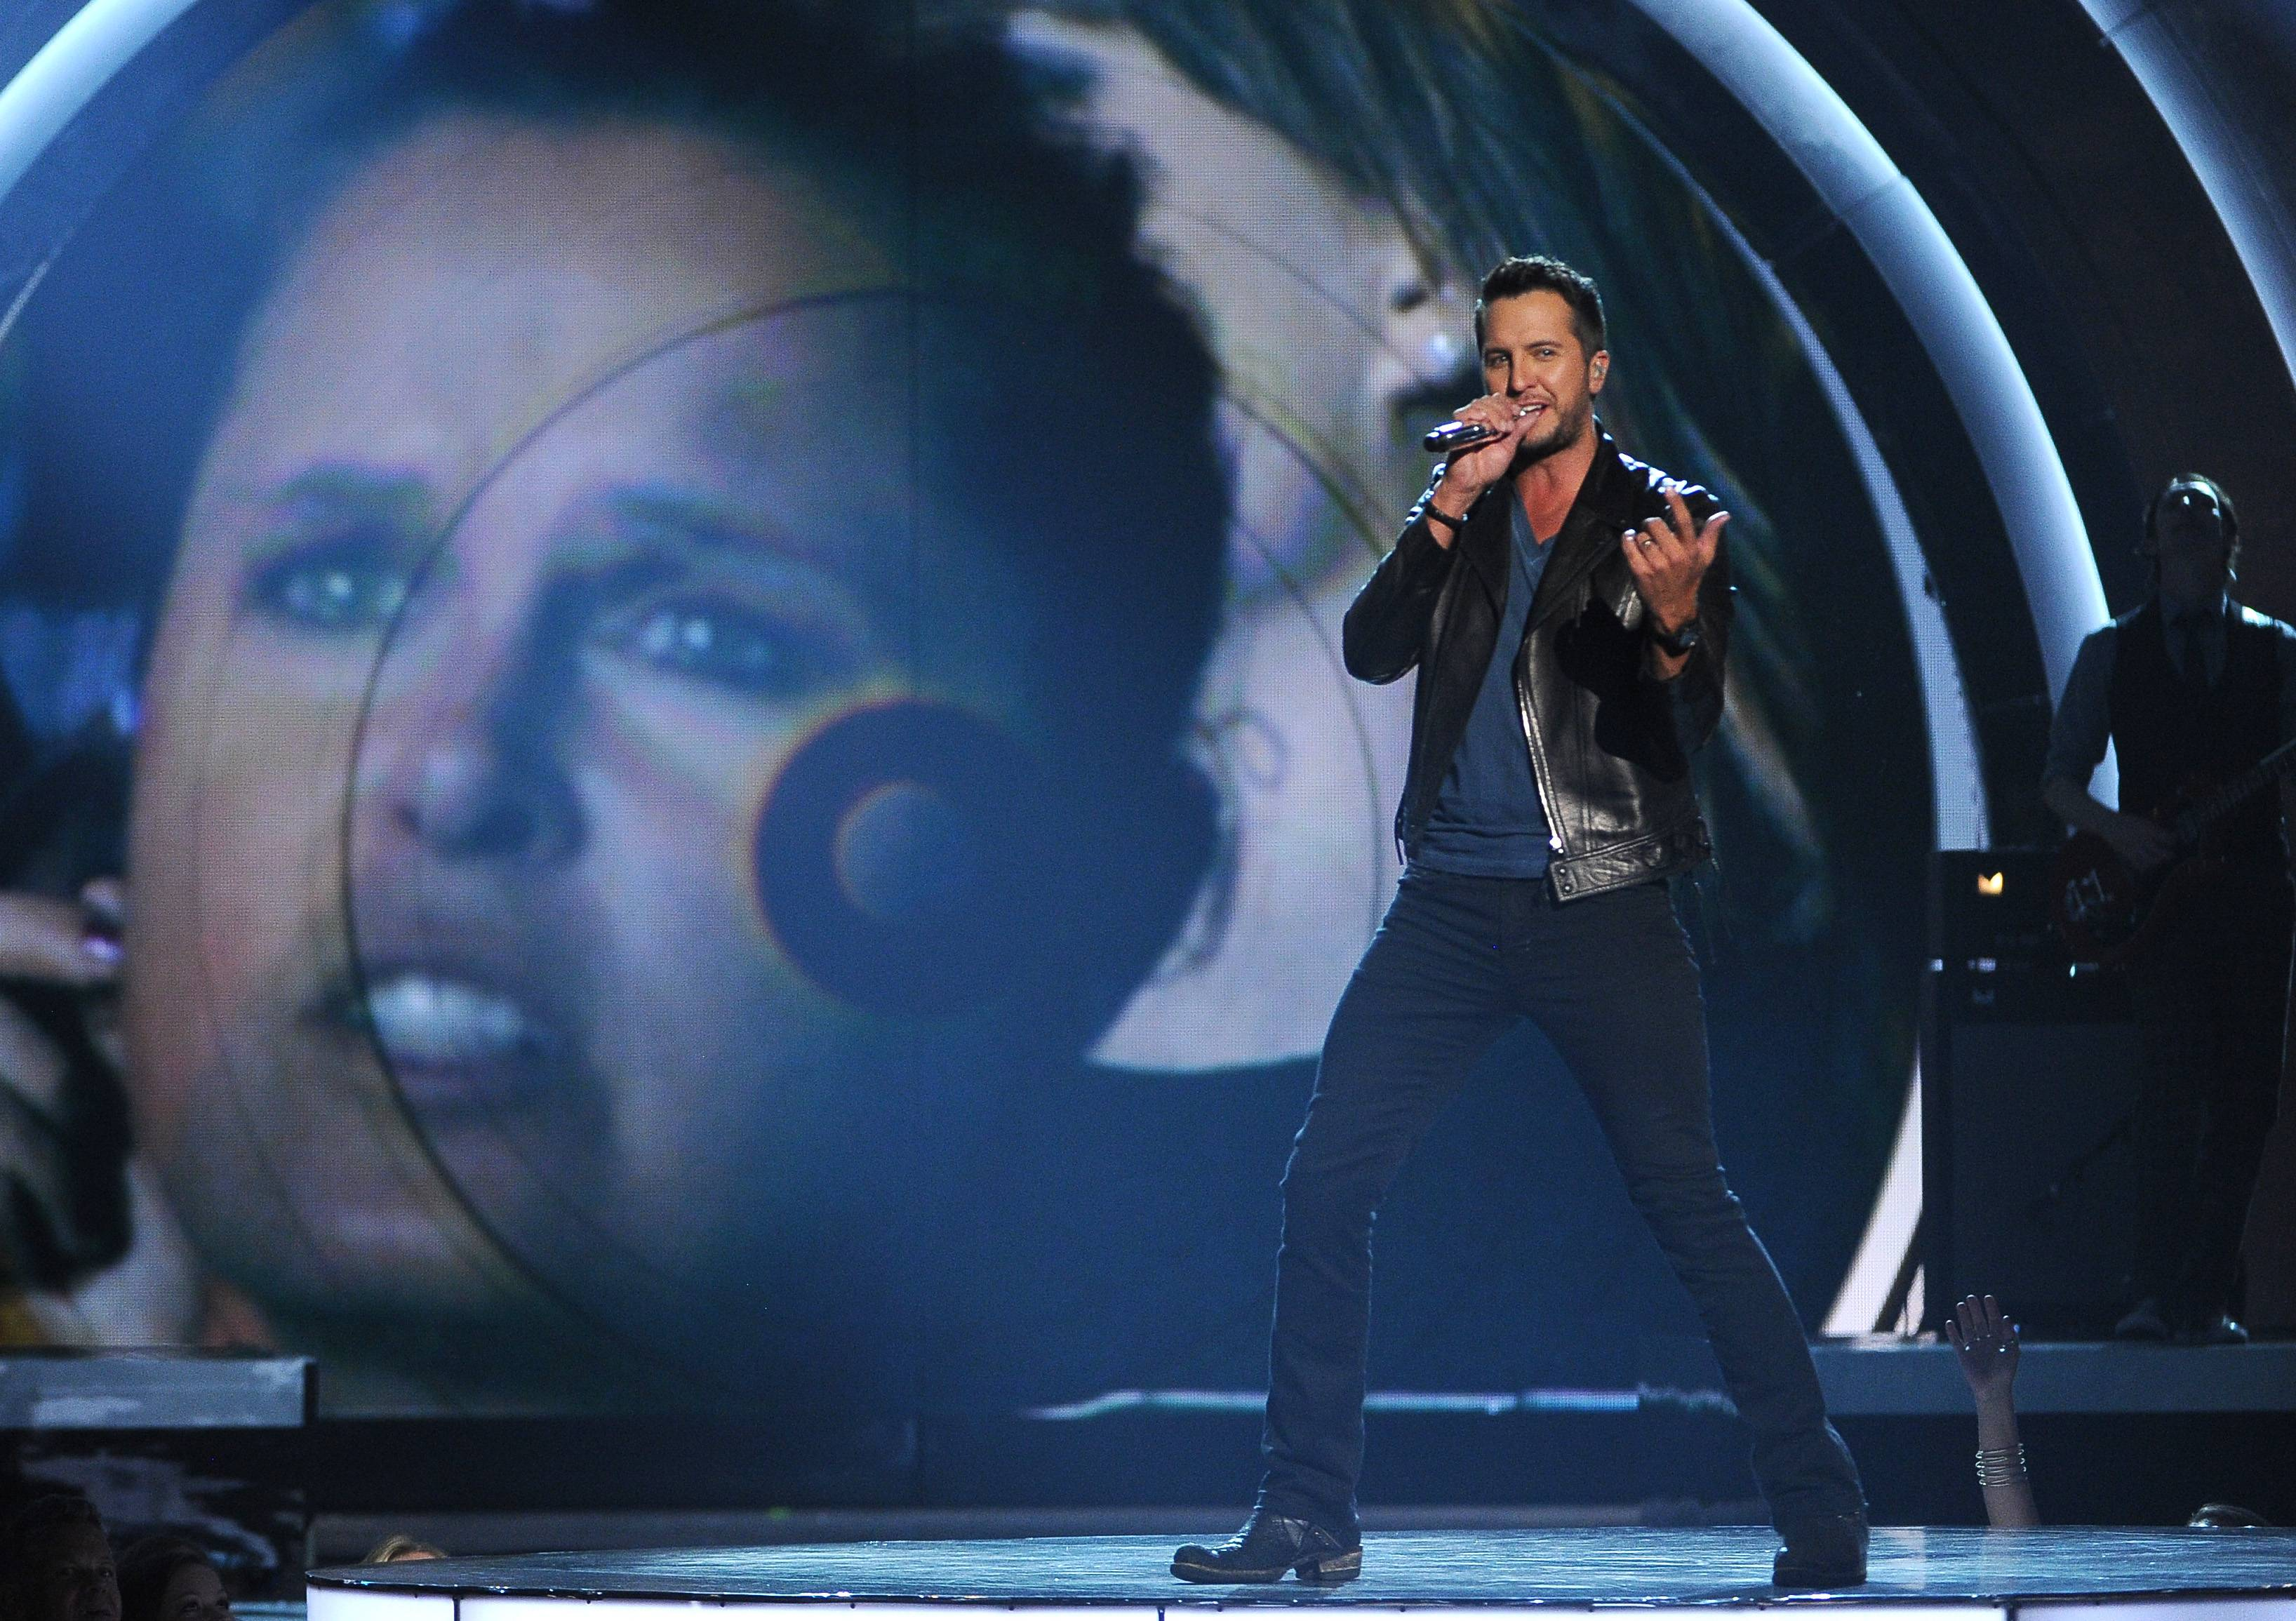 Luke Bryan performs on stage at the 49th annual Academy of Country Music Awards.